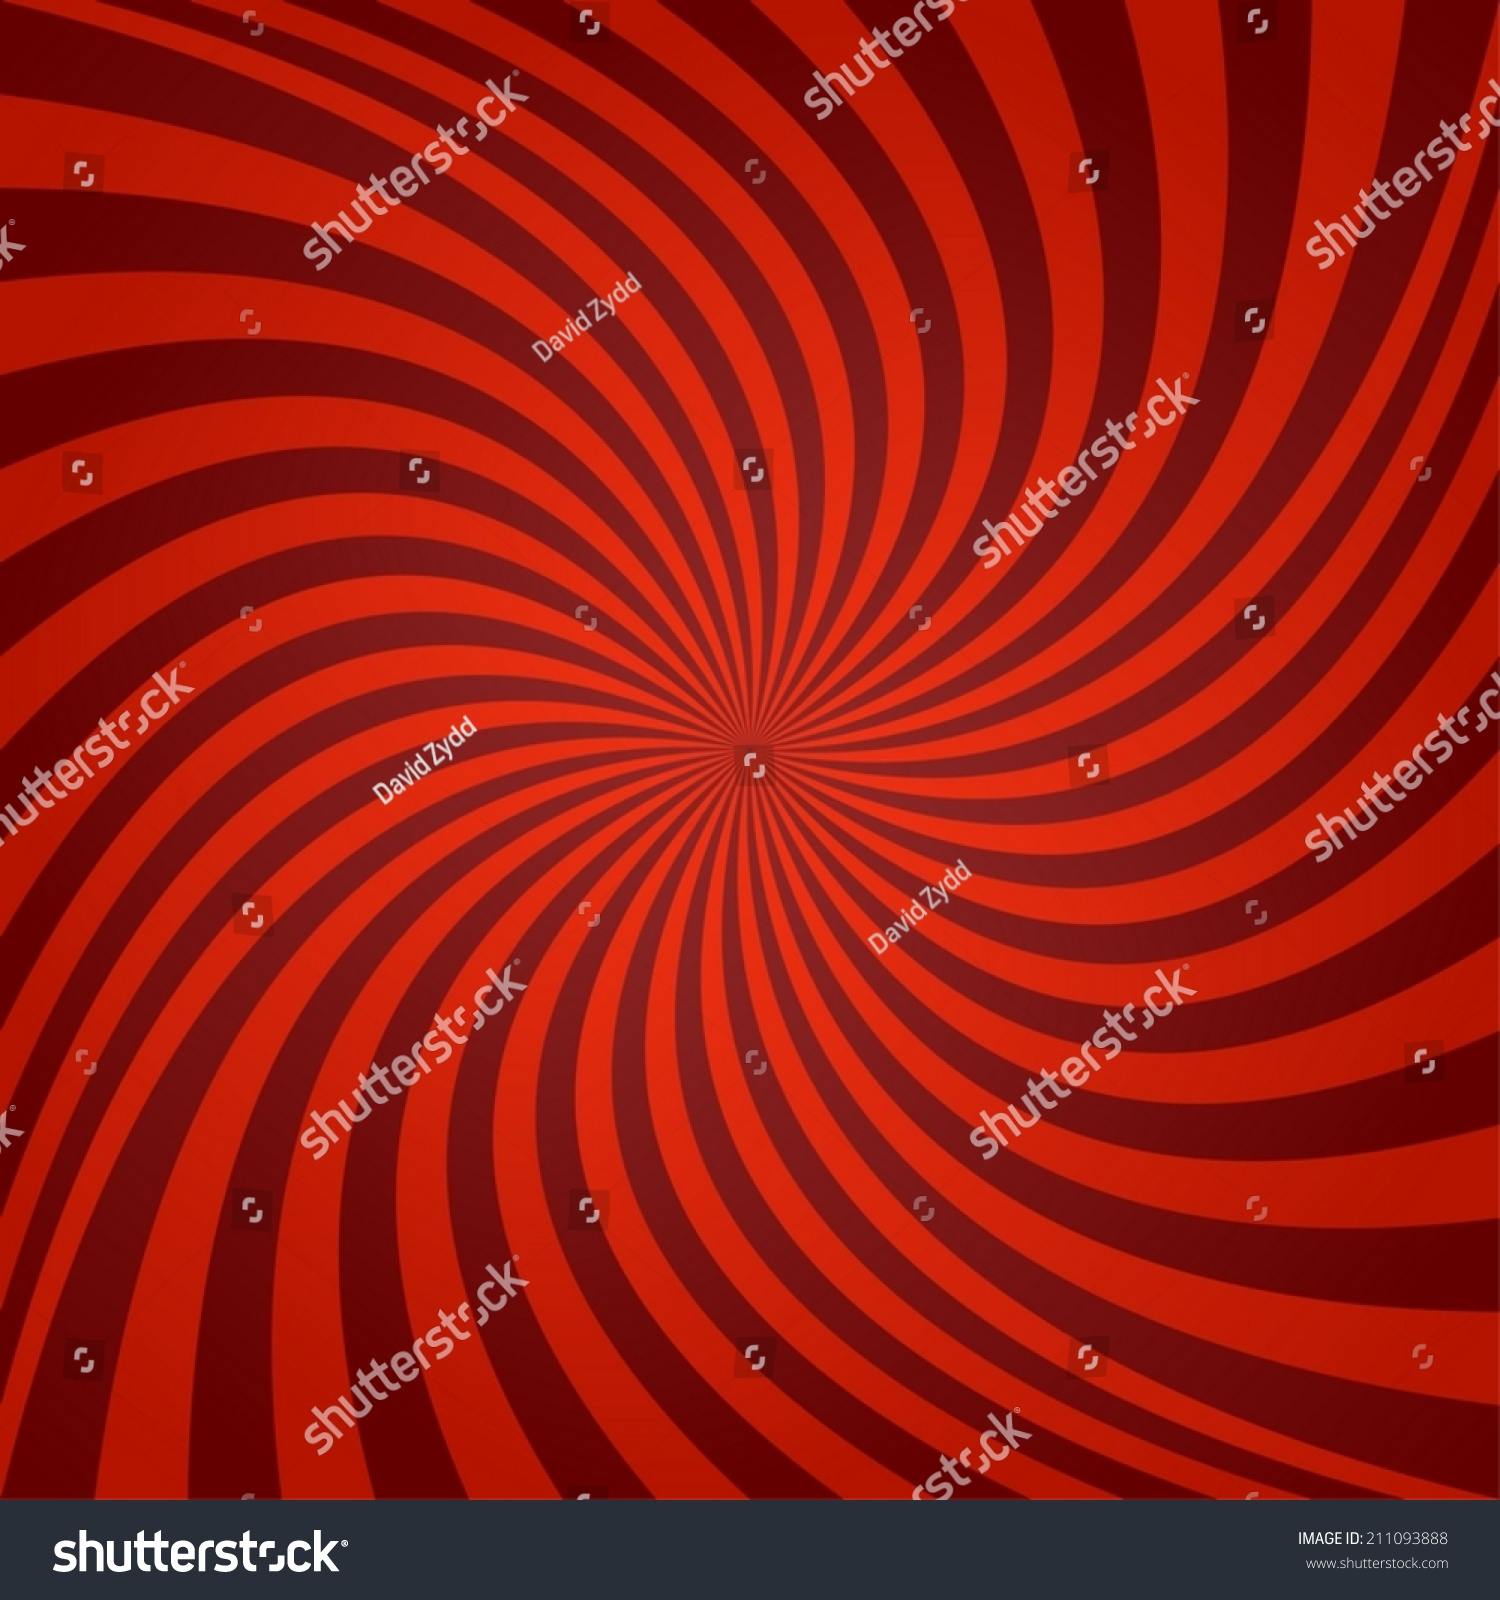 Tremendous Red Maroon Spiral Background Vector Version Stock Vector 211093888 Hairstyles For Women Draintrainus